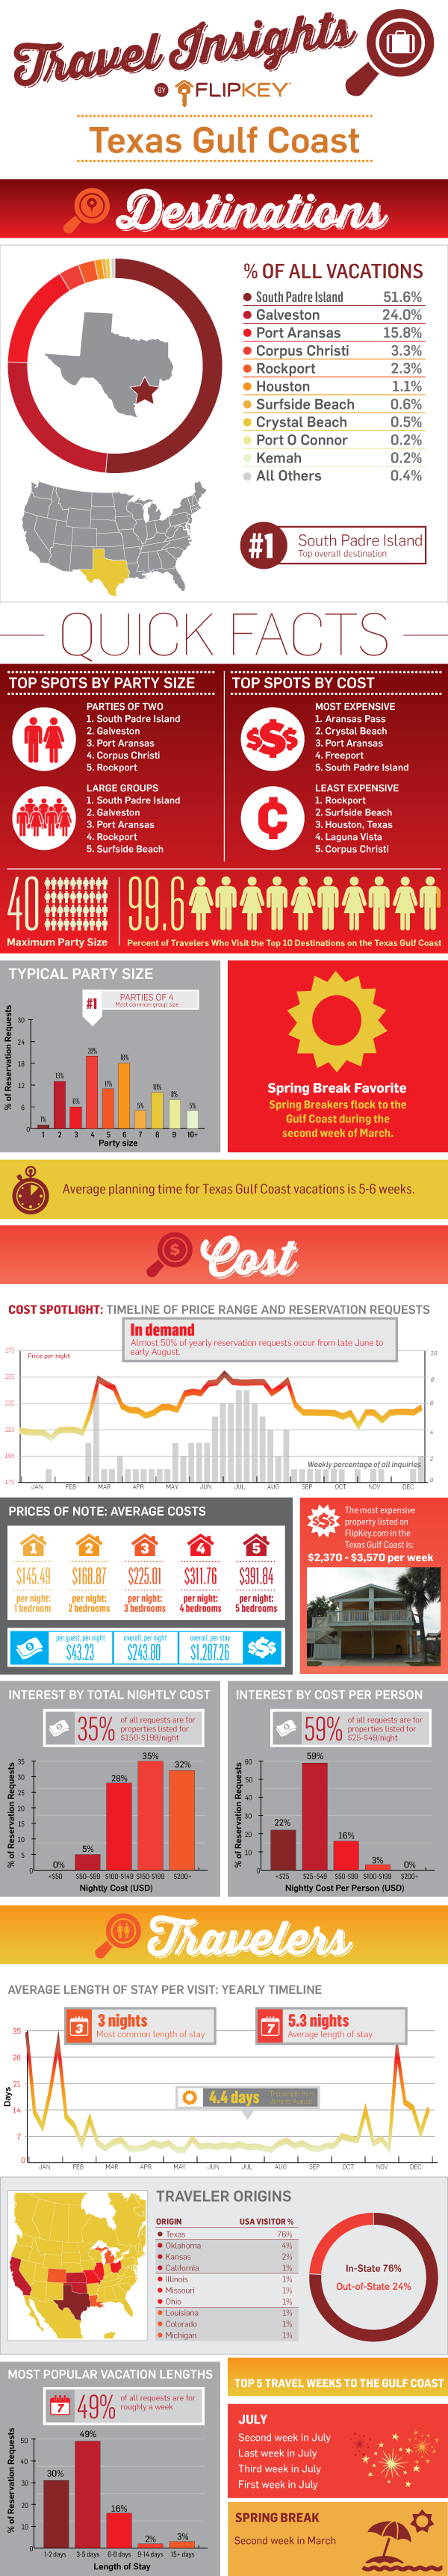 Texas Gulf Coast Travel Insights Infographic